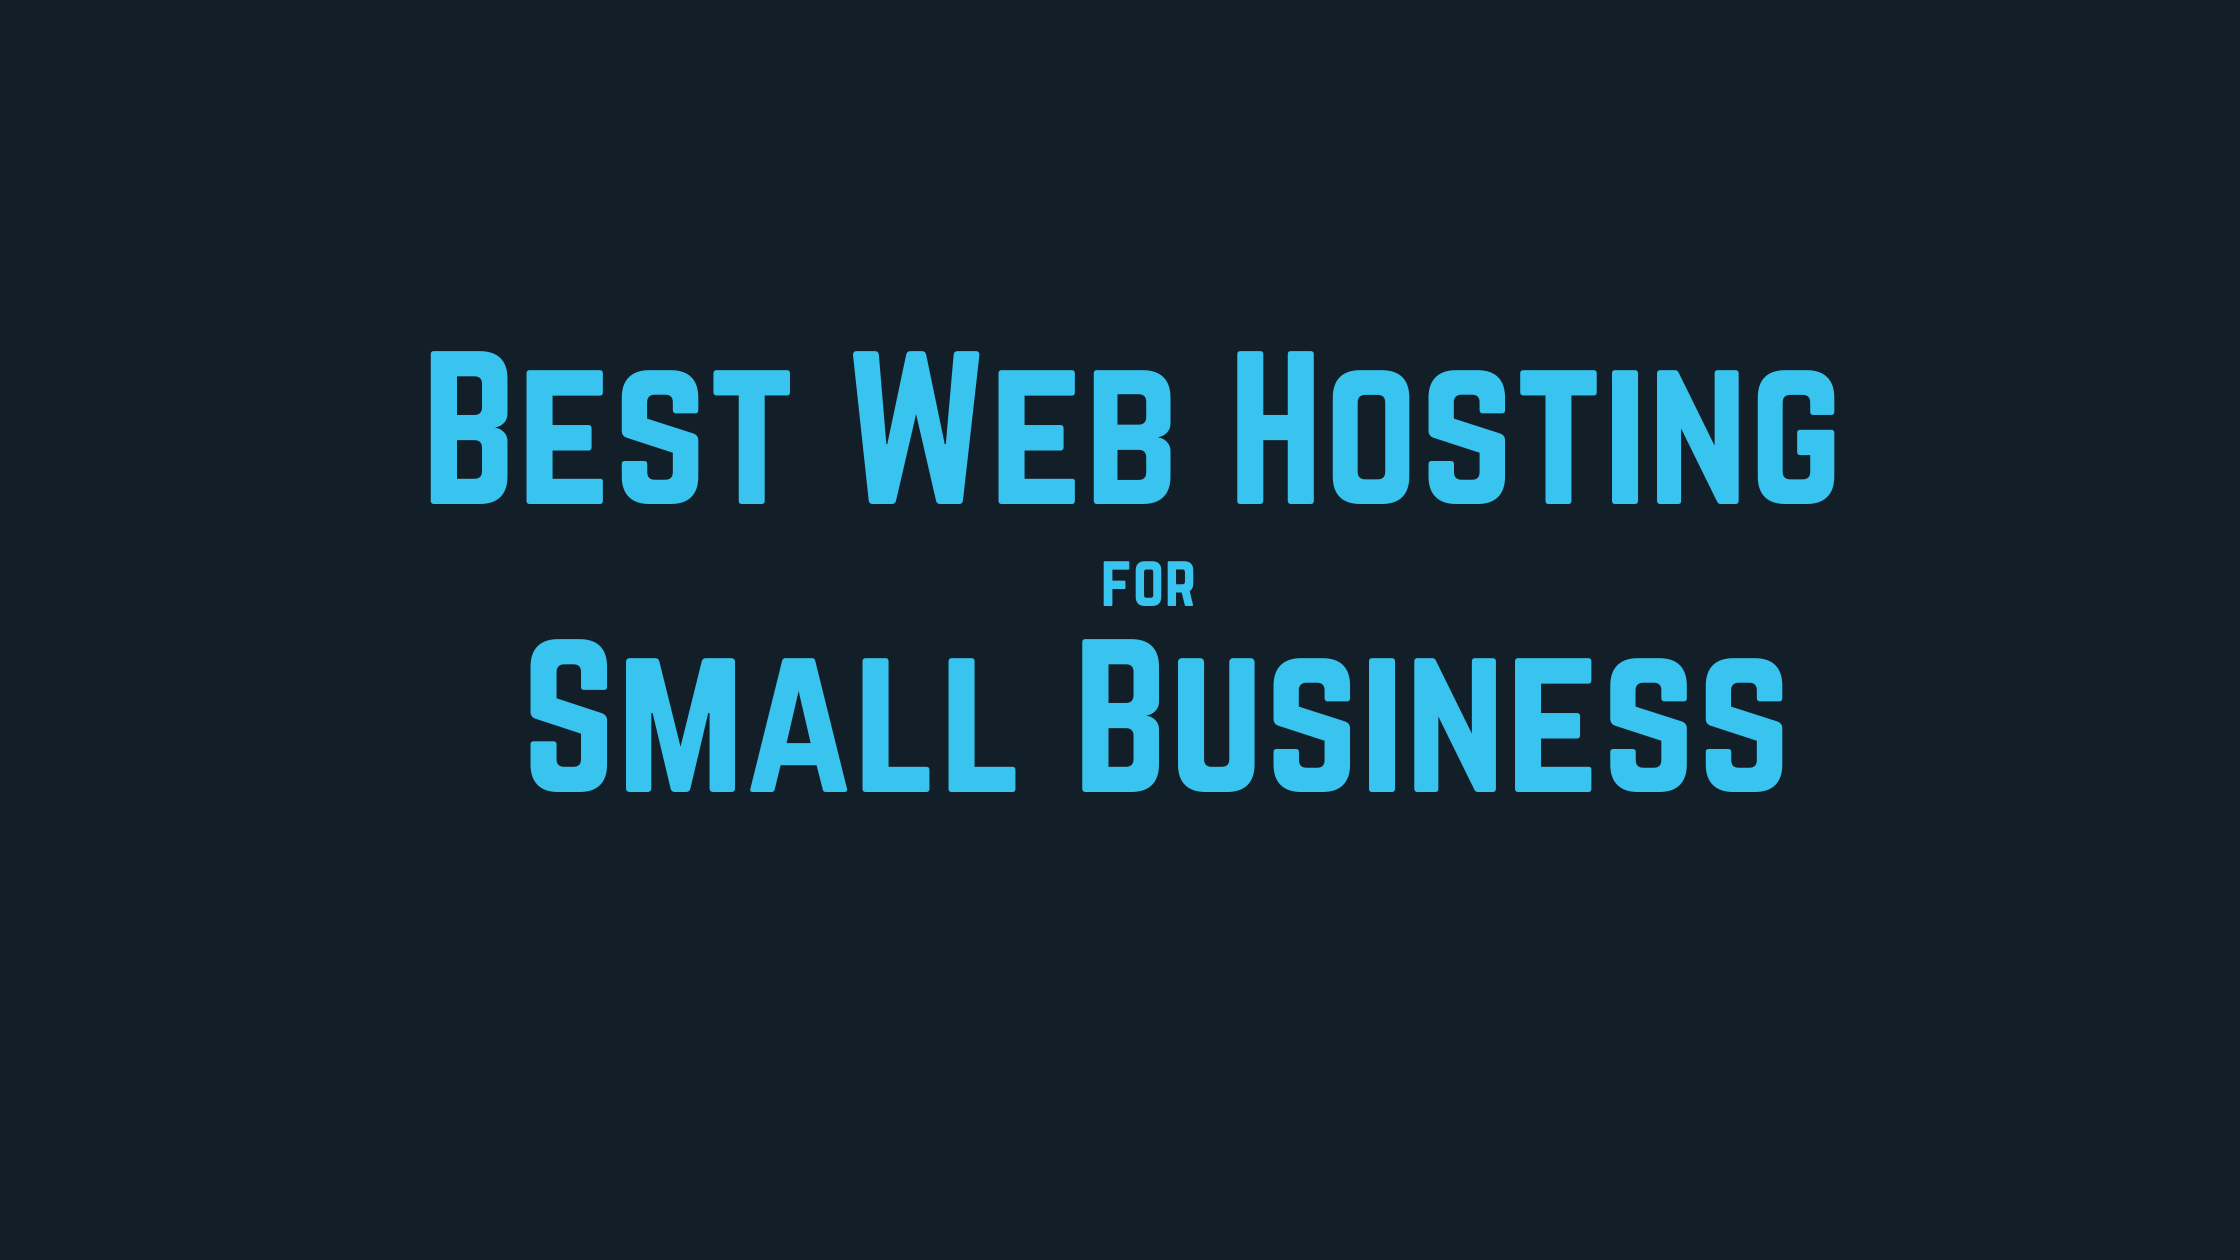 web hosting for small business